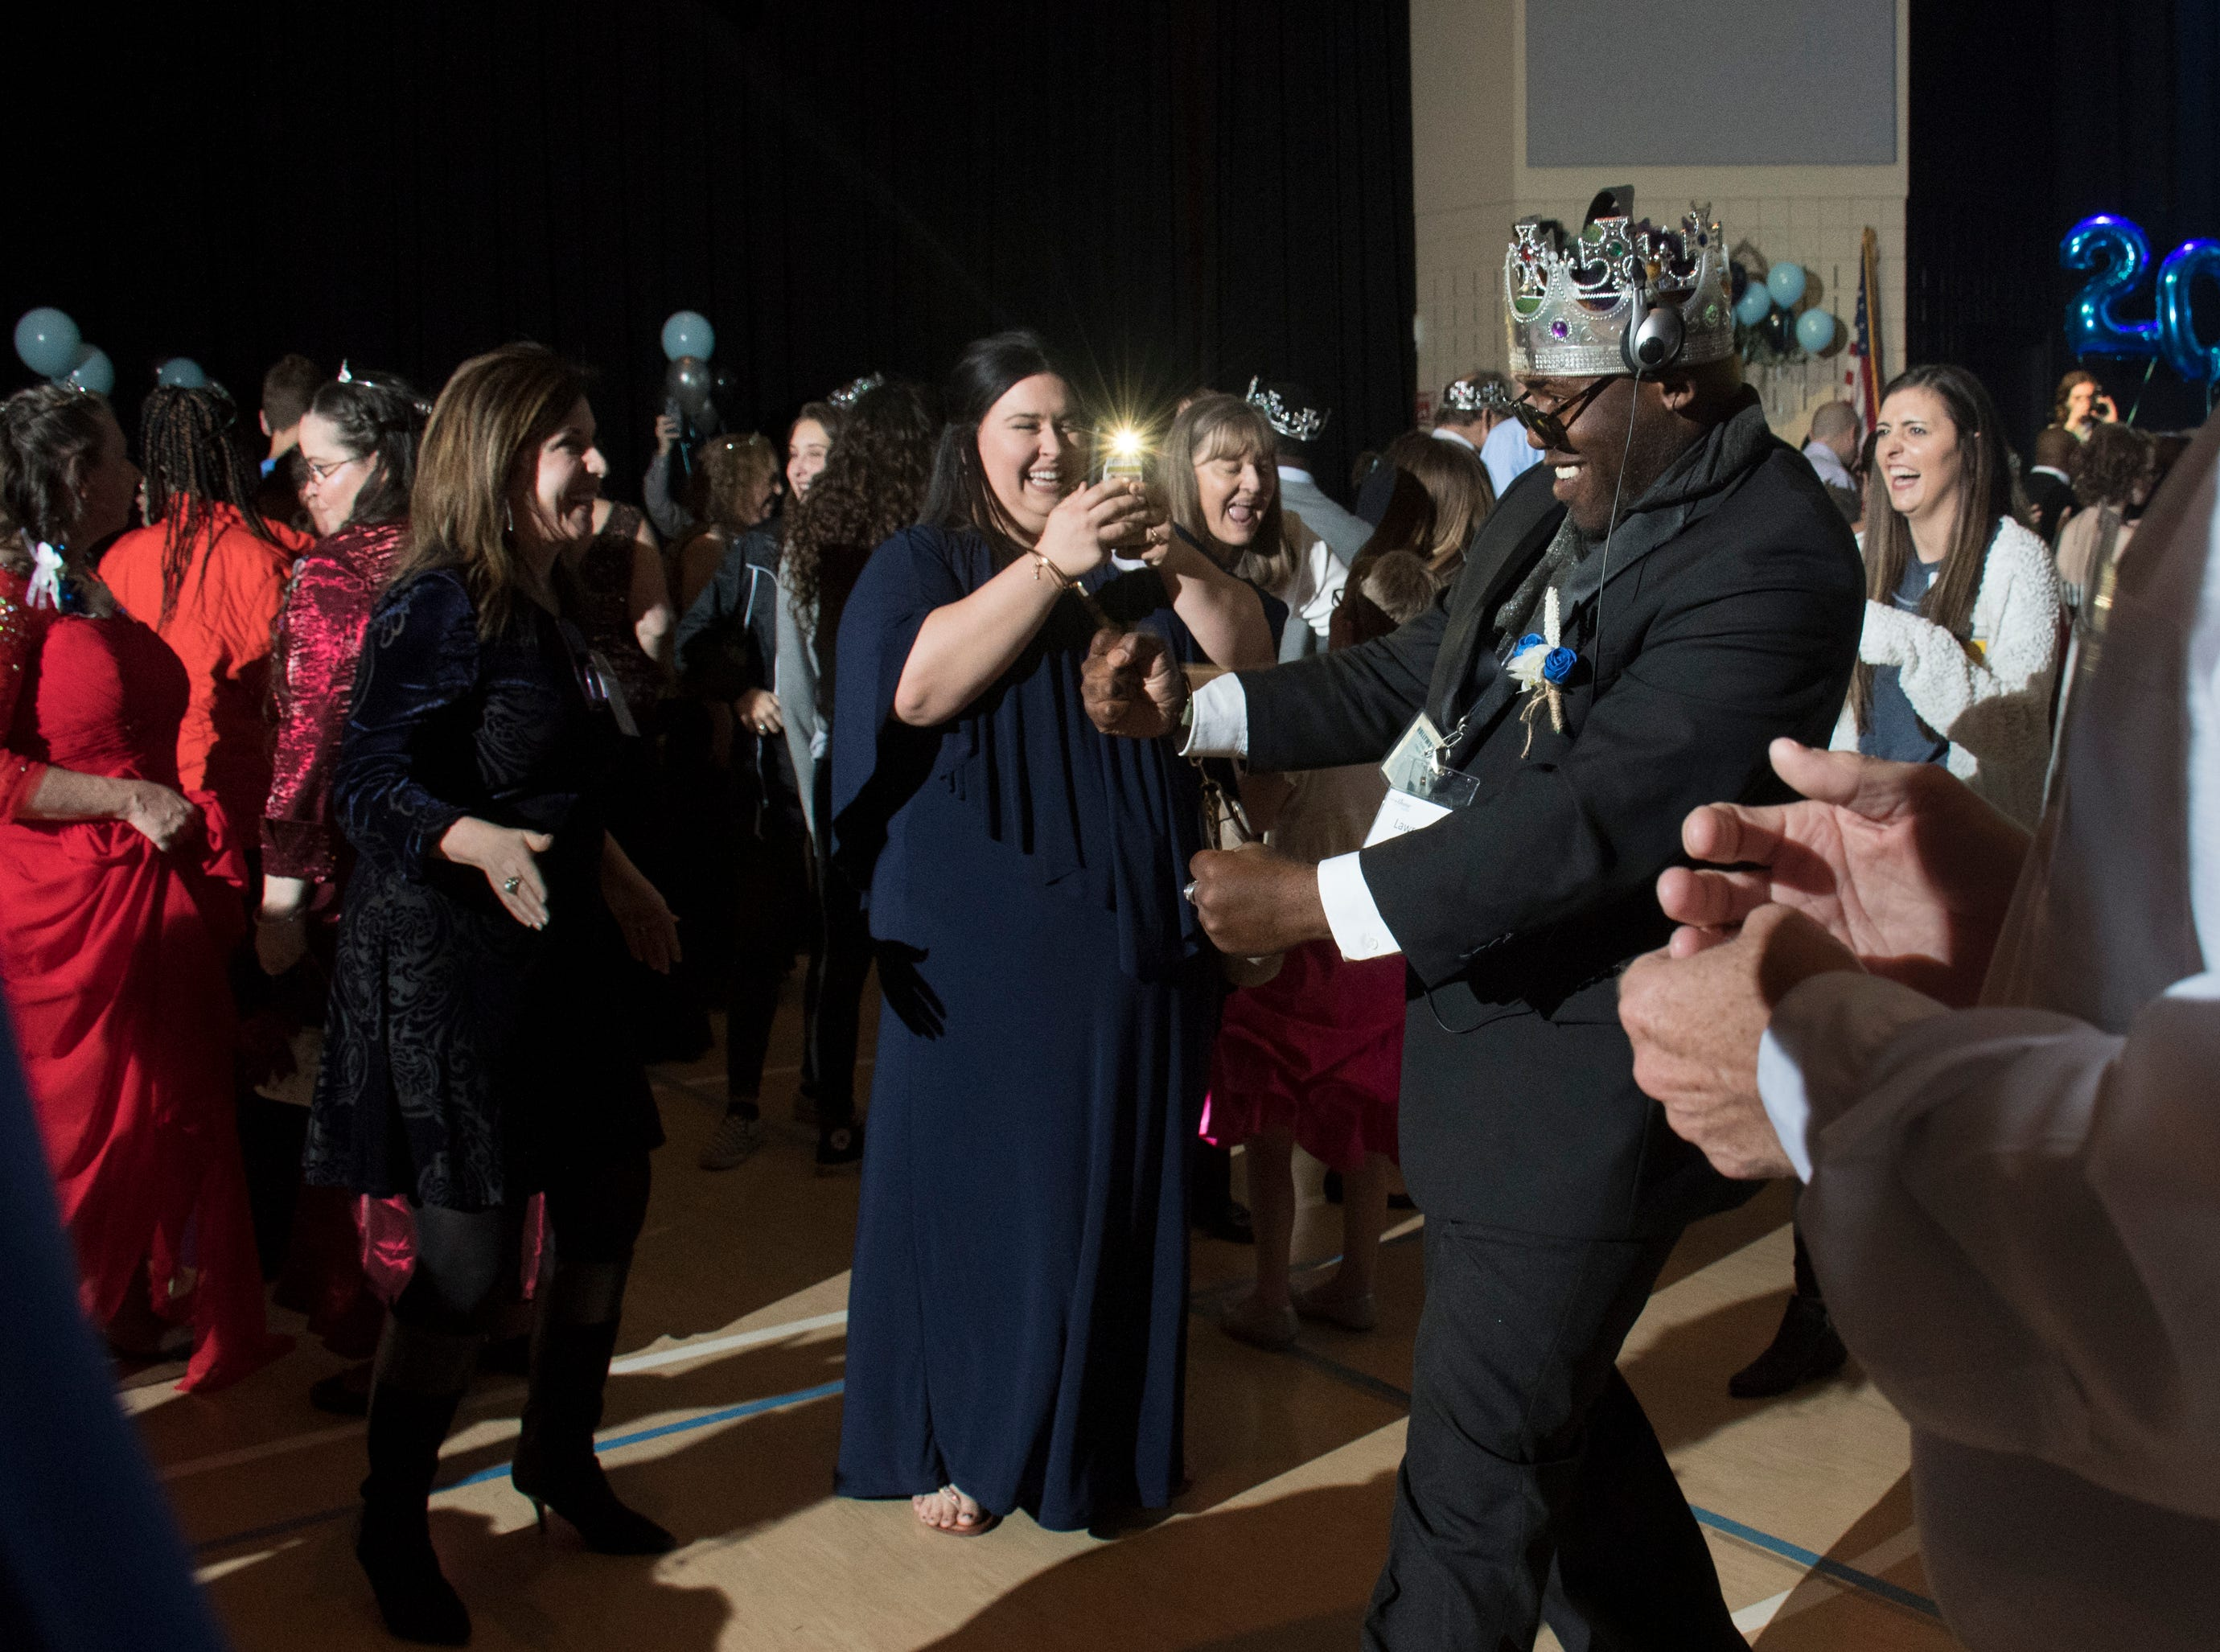 Lawrence Jones, right, shows his dance moves during the Night to Shine prom for people with special needs sponsored by the Tim Tebow Foundation at Perdido Bay United Methodist Church in Pensacola on Friday, February 8, 2019.